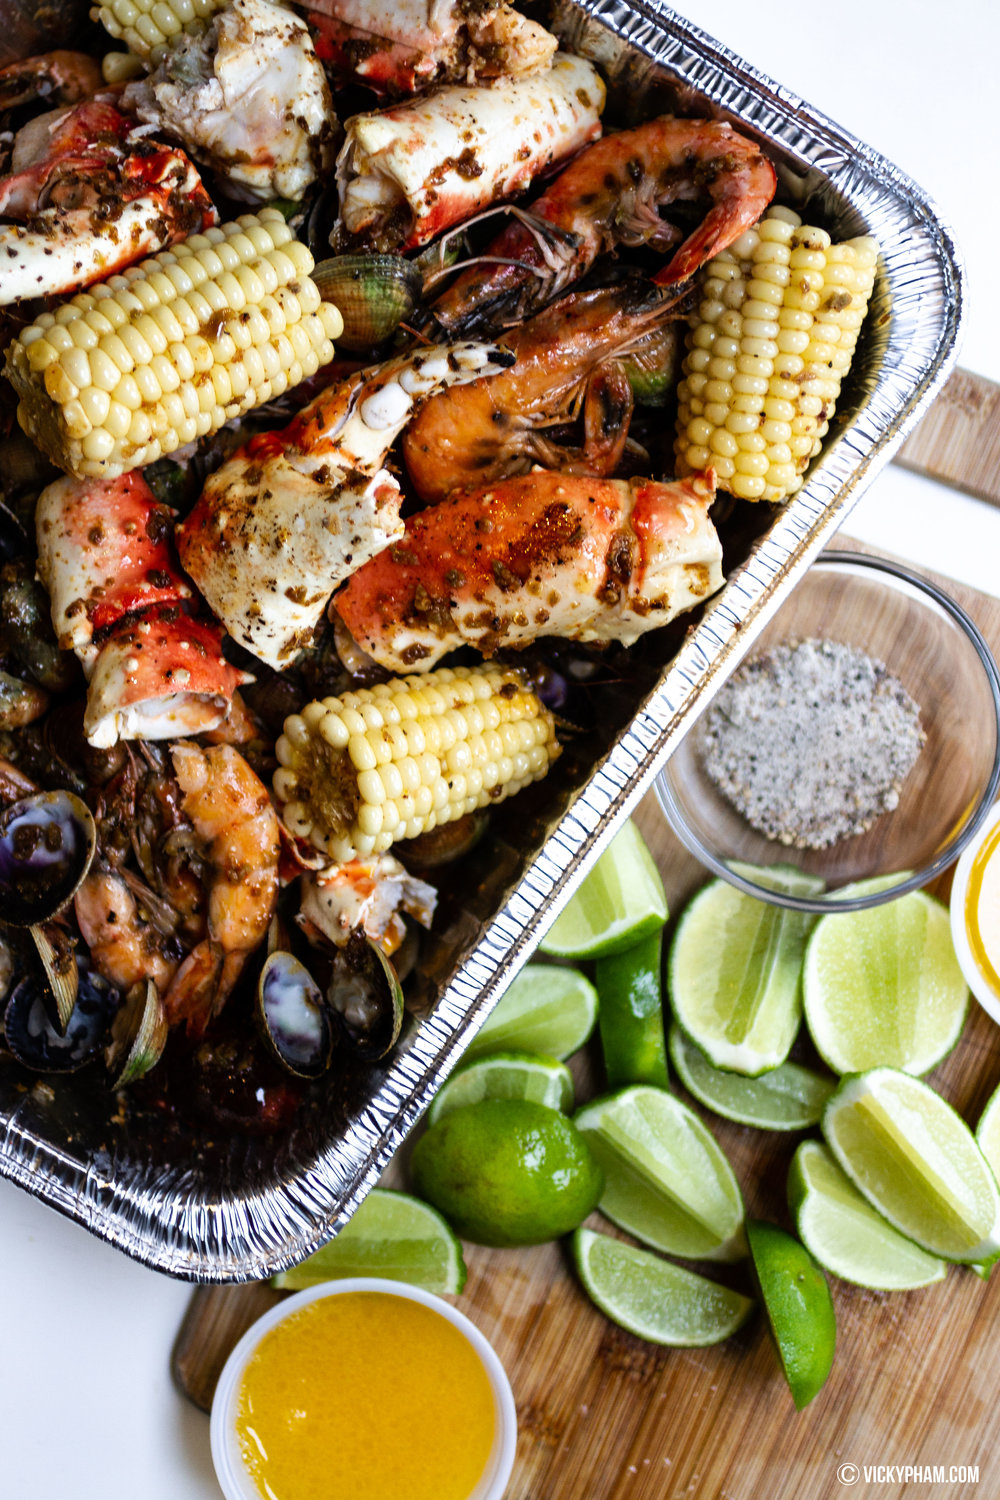 Vicky's awesome seafood boil: King crab legs, clams, shrimp, corn and sausage in a fiery and buttery garlic lemon pepper sauce